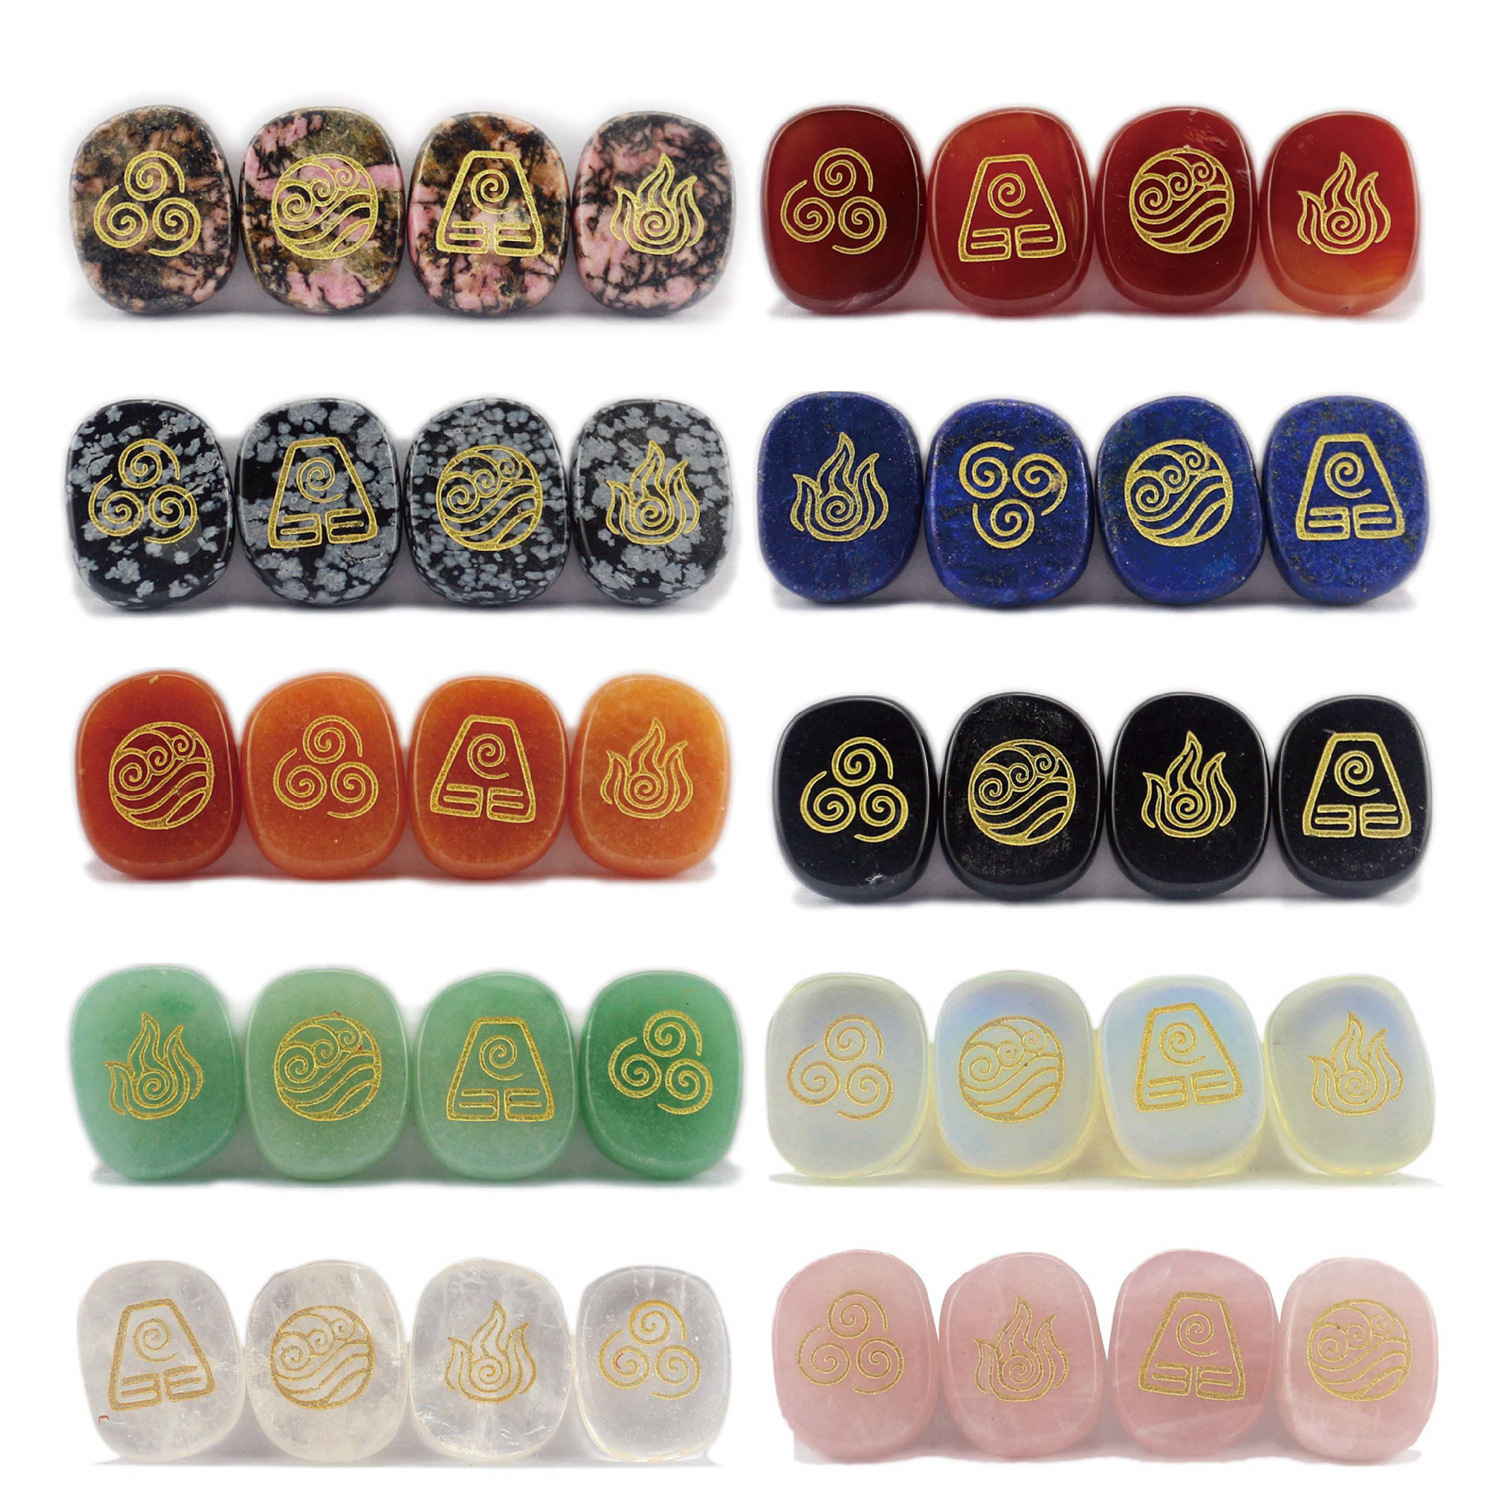 Crystal Sculpture Fire Air Water Earth Four-element Rune Aura Divination Stone Jewelry Decoration